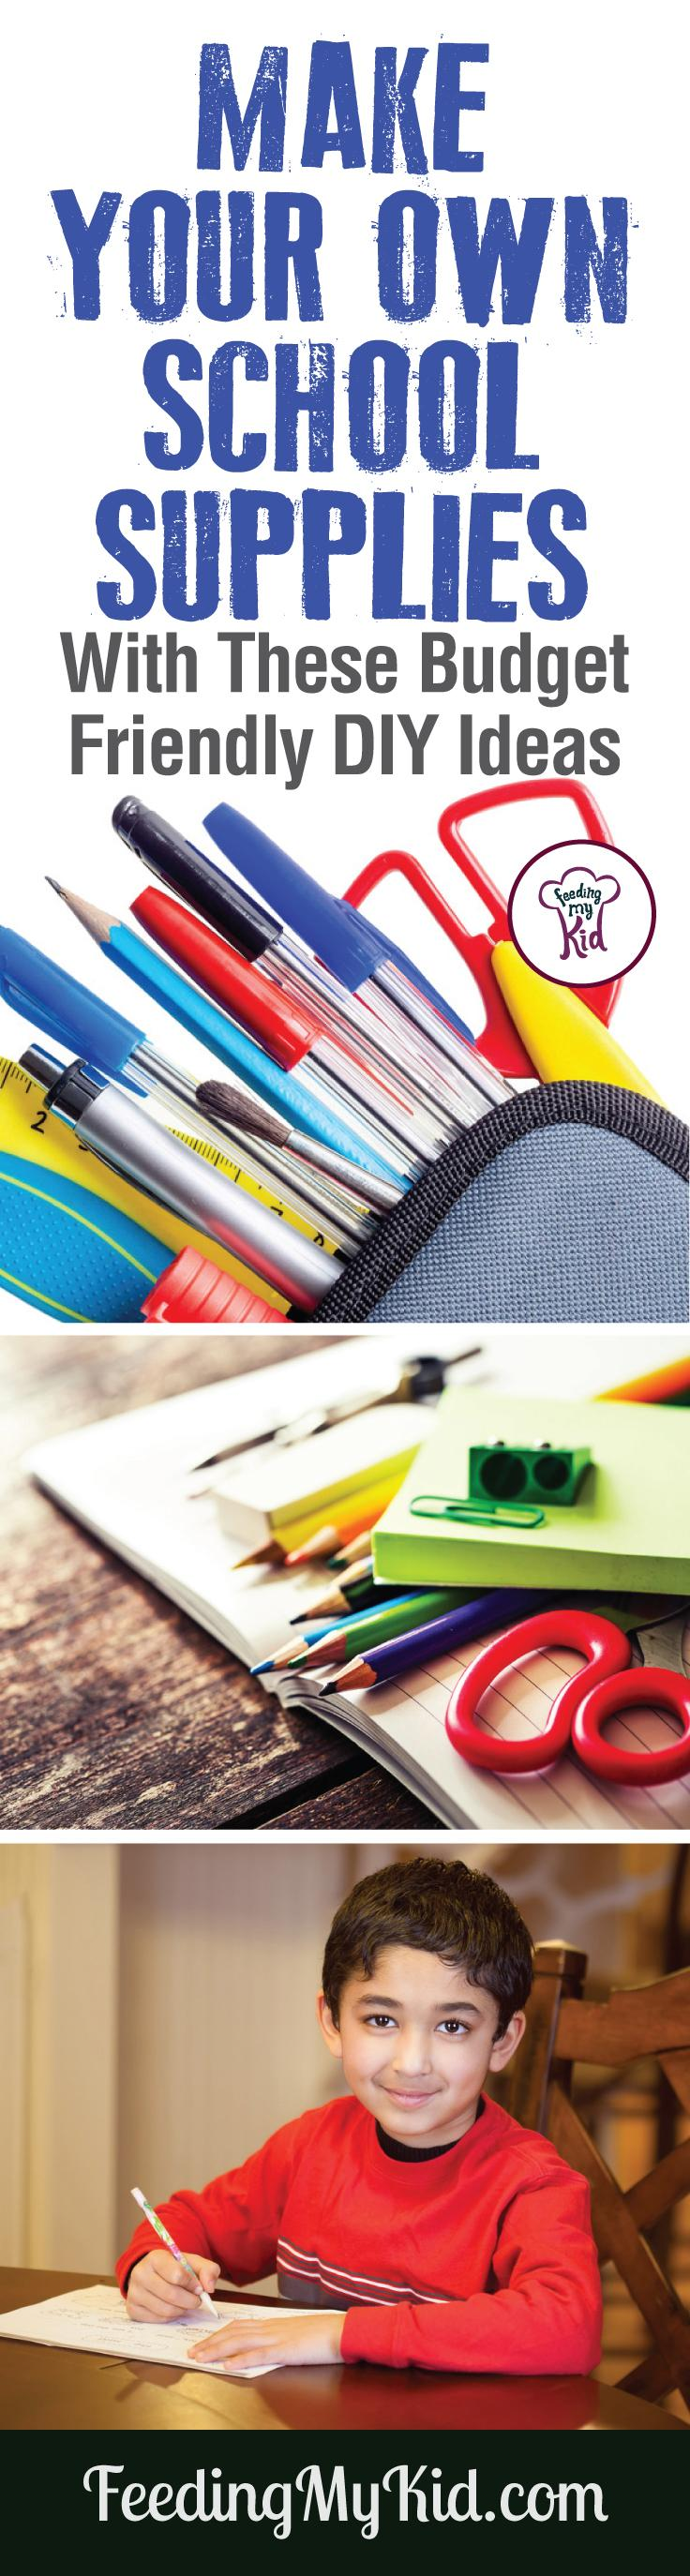 Make your own school supplies with this back to school DIY video! Get inspired with these budget-friendly tips to make personalized supplies.